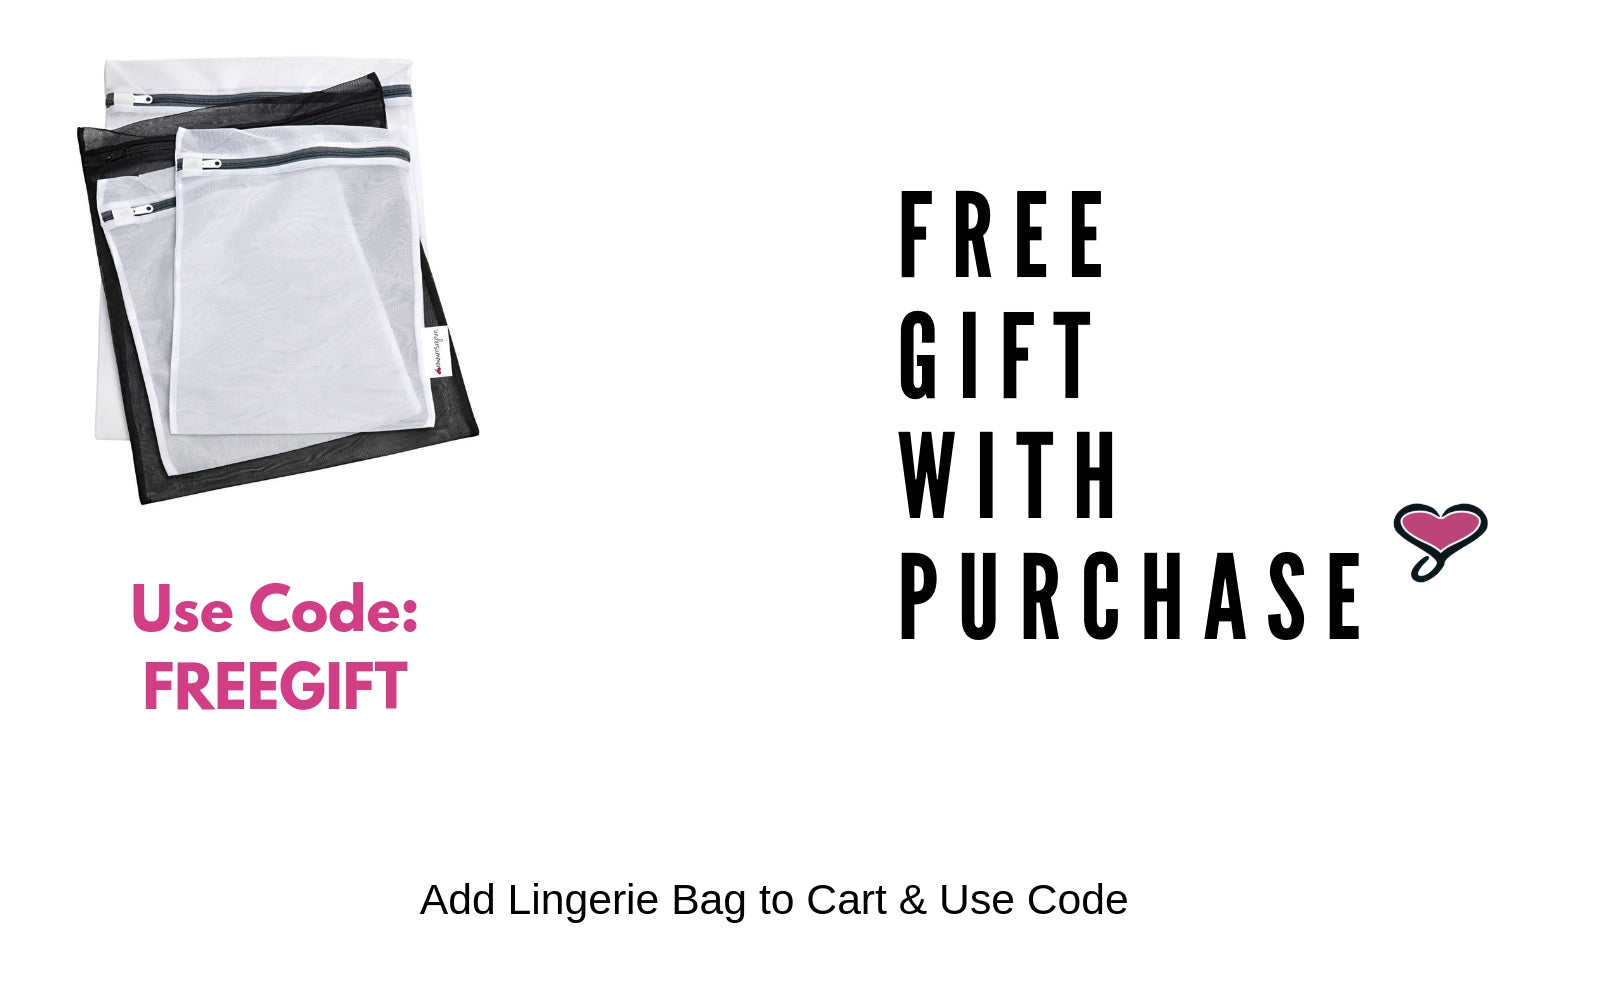 Free Gift With Purchase use code: FREEGIFT for a free lingerie bag.  Must add lingerie bag to cart & use code.